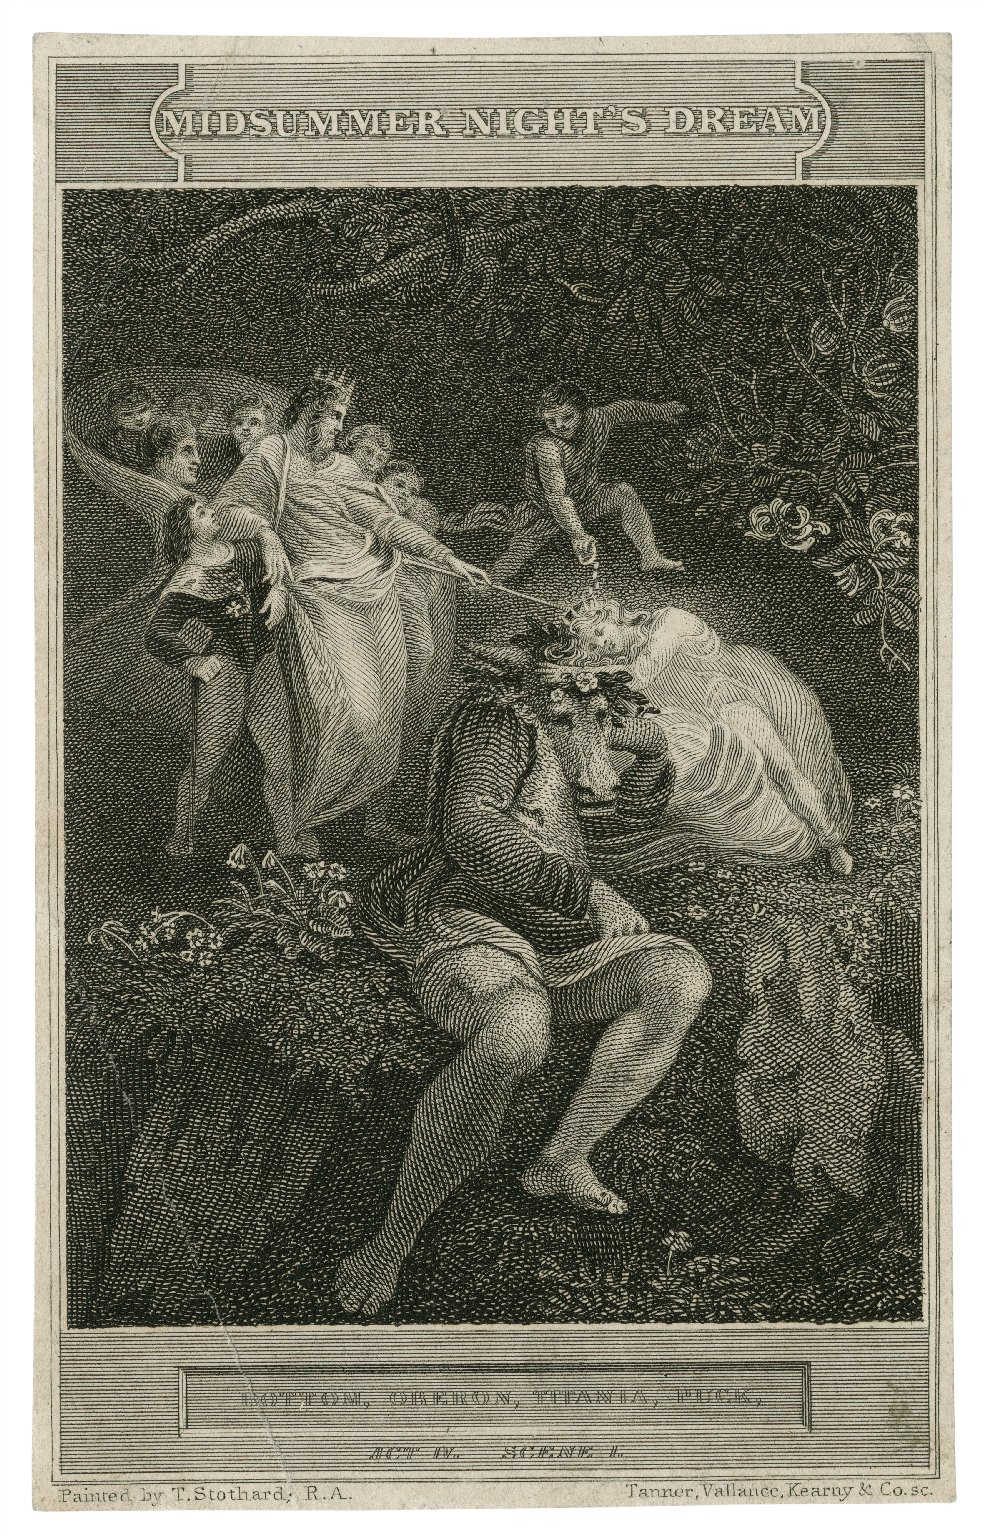 Midsummer night's dream, Obe.: Now, my Titania, wake you, my sweet queen, act 4, scene 1 [graphic] / [Thomas Stothard] ; Tanner, Vallance, Kearny & Co., sc.